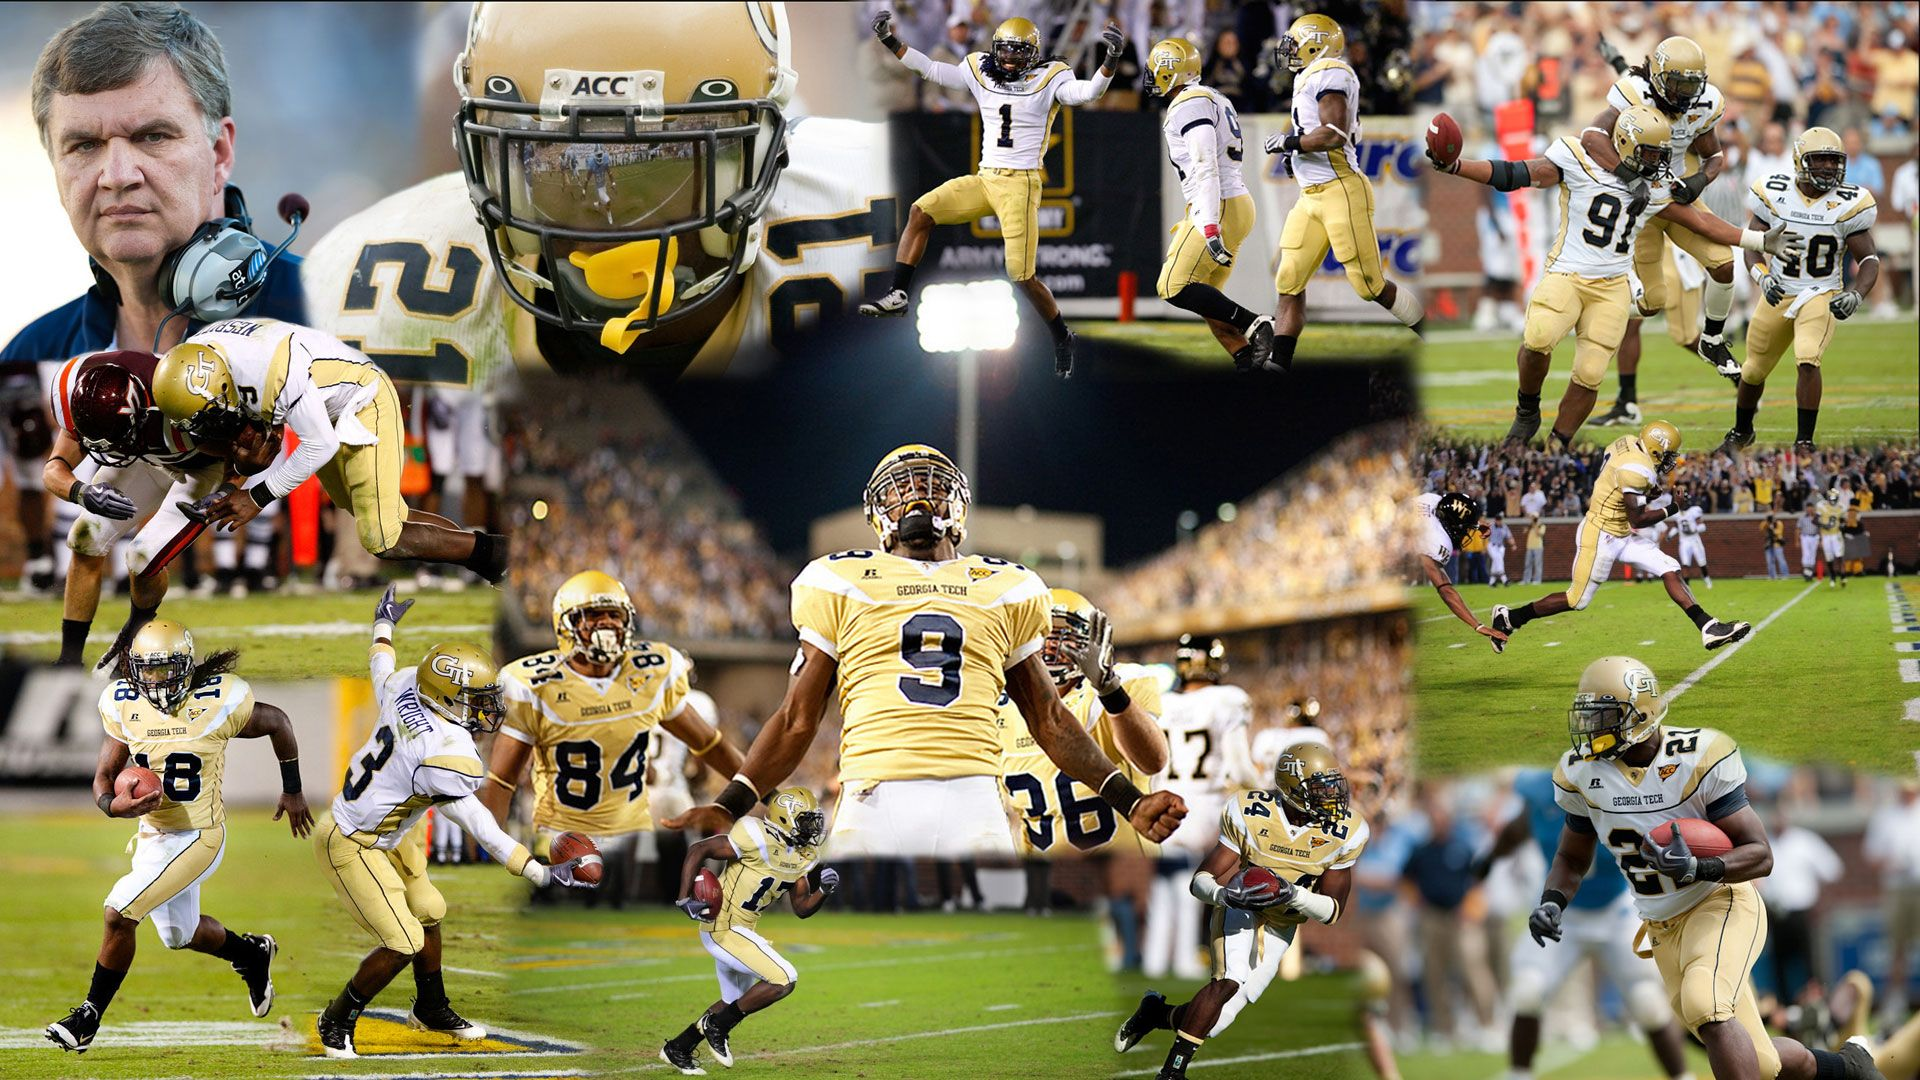 Collection of Tech Football Wallpaper on